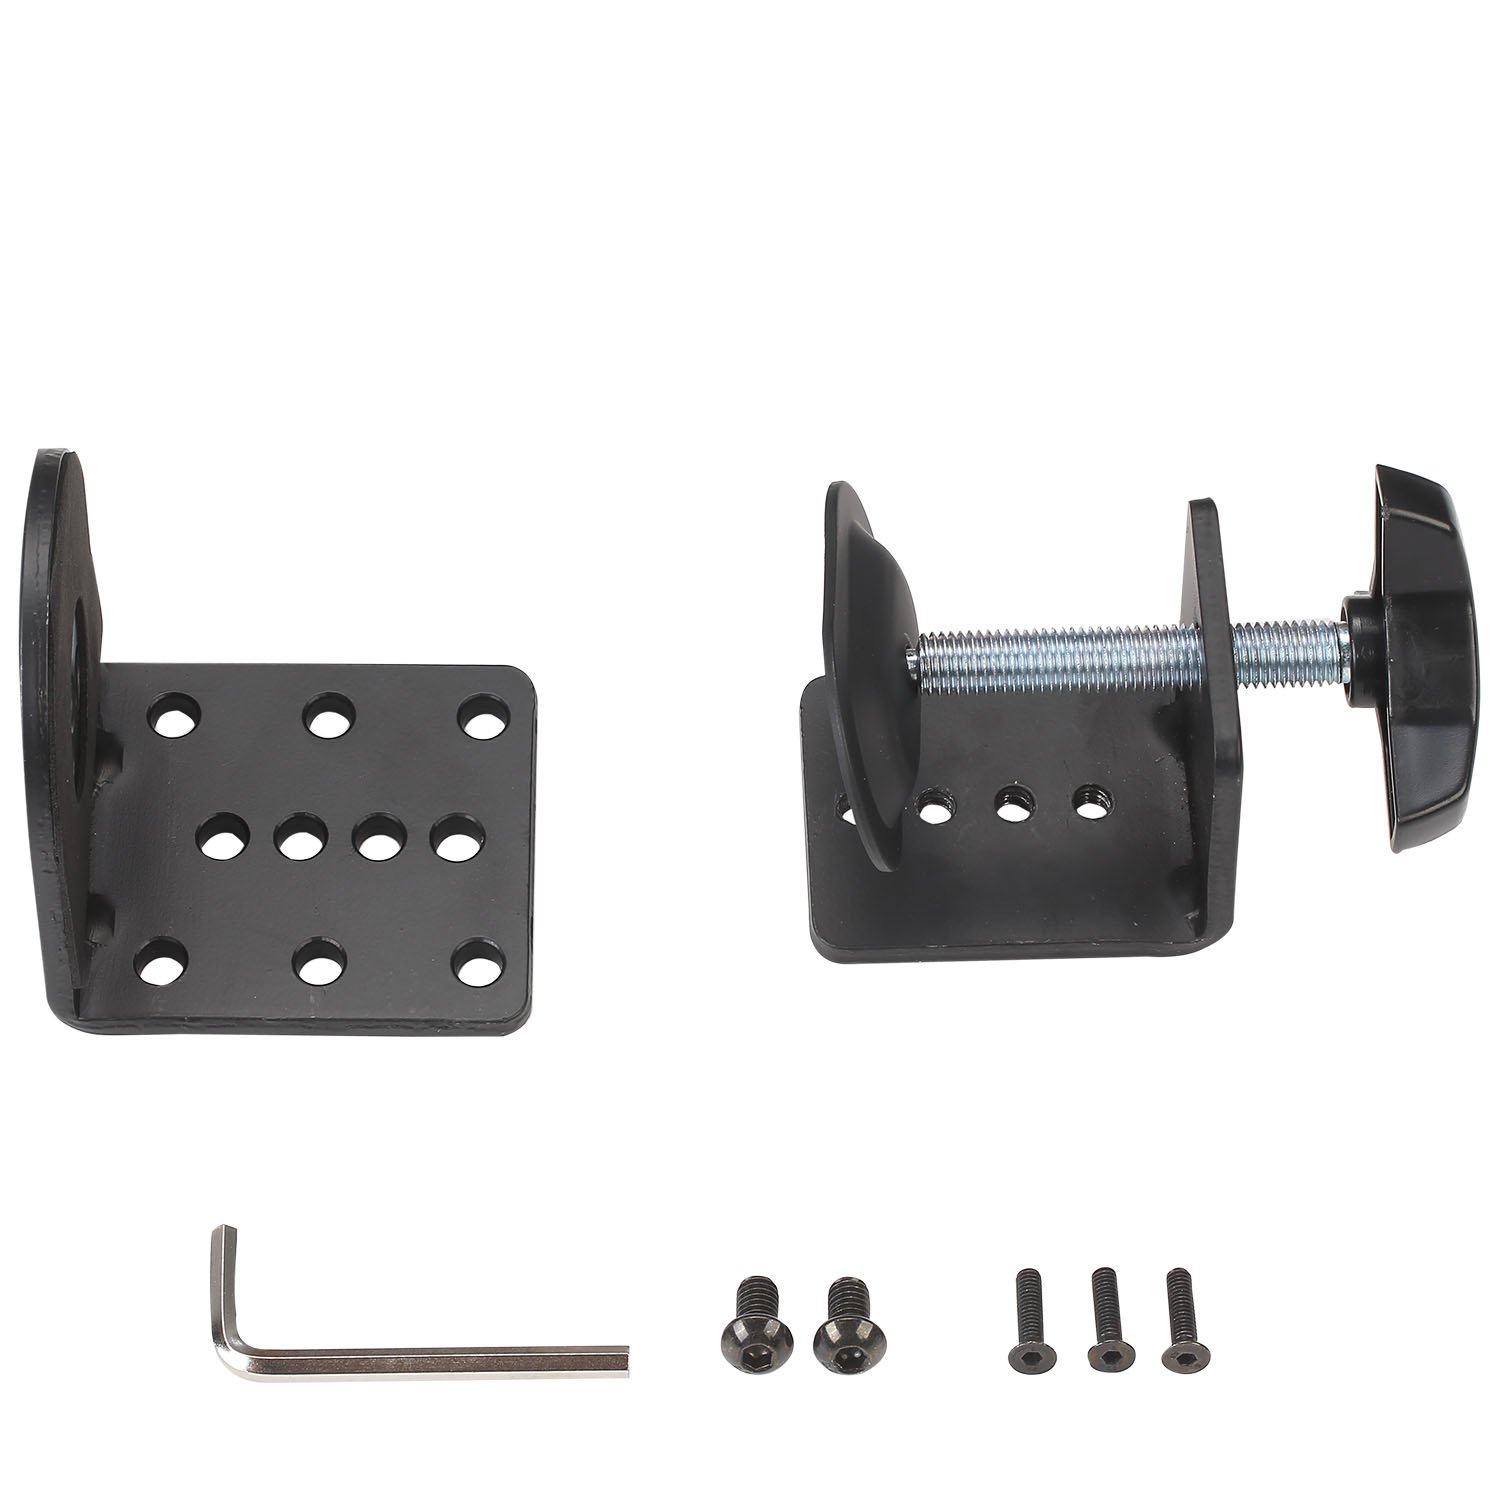 WALI C-Clamp Base Stand Mounting for WALI Monitor Mount Workstation System (C-CLAMP), Black